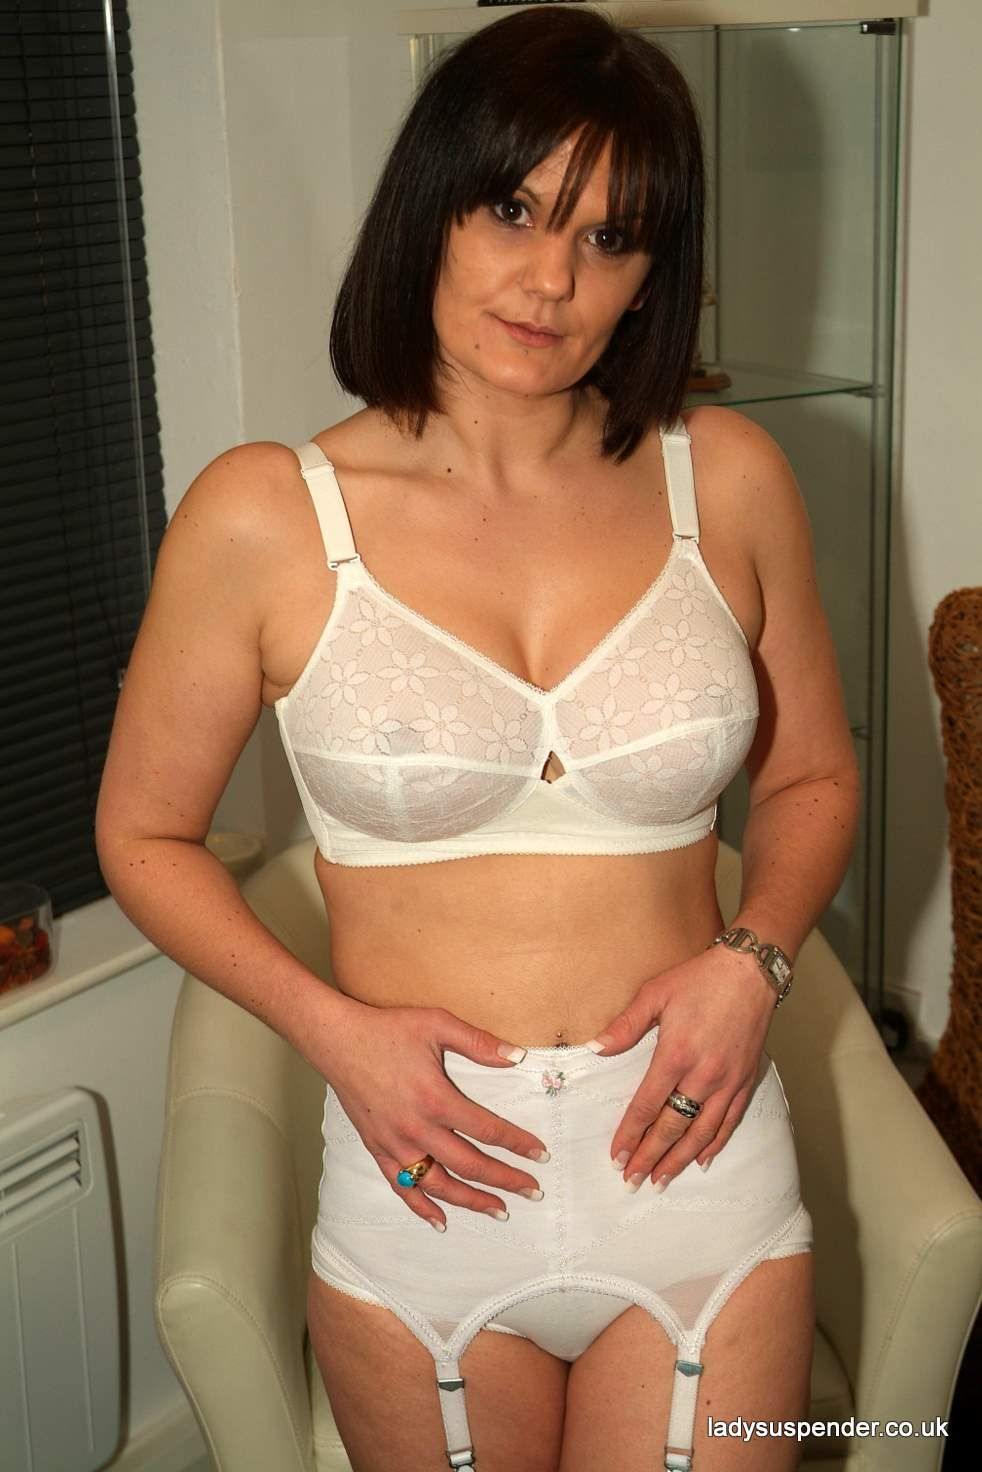 Time for erotic wives pic gallery